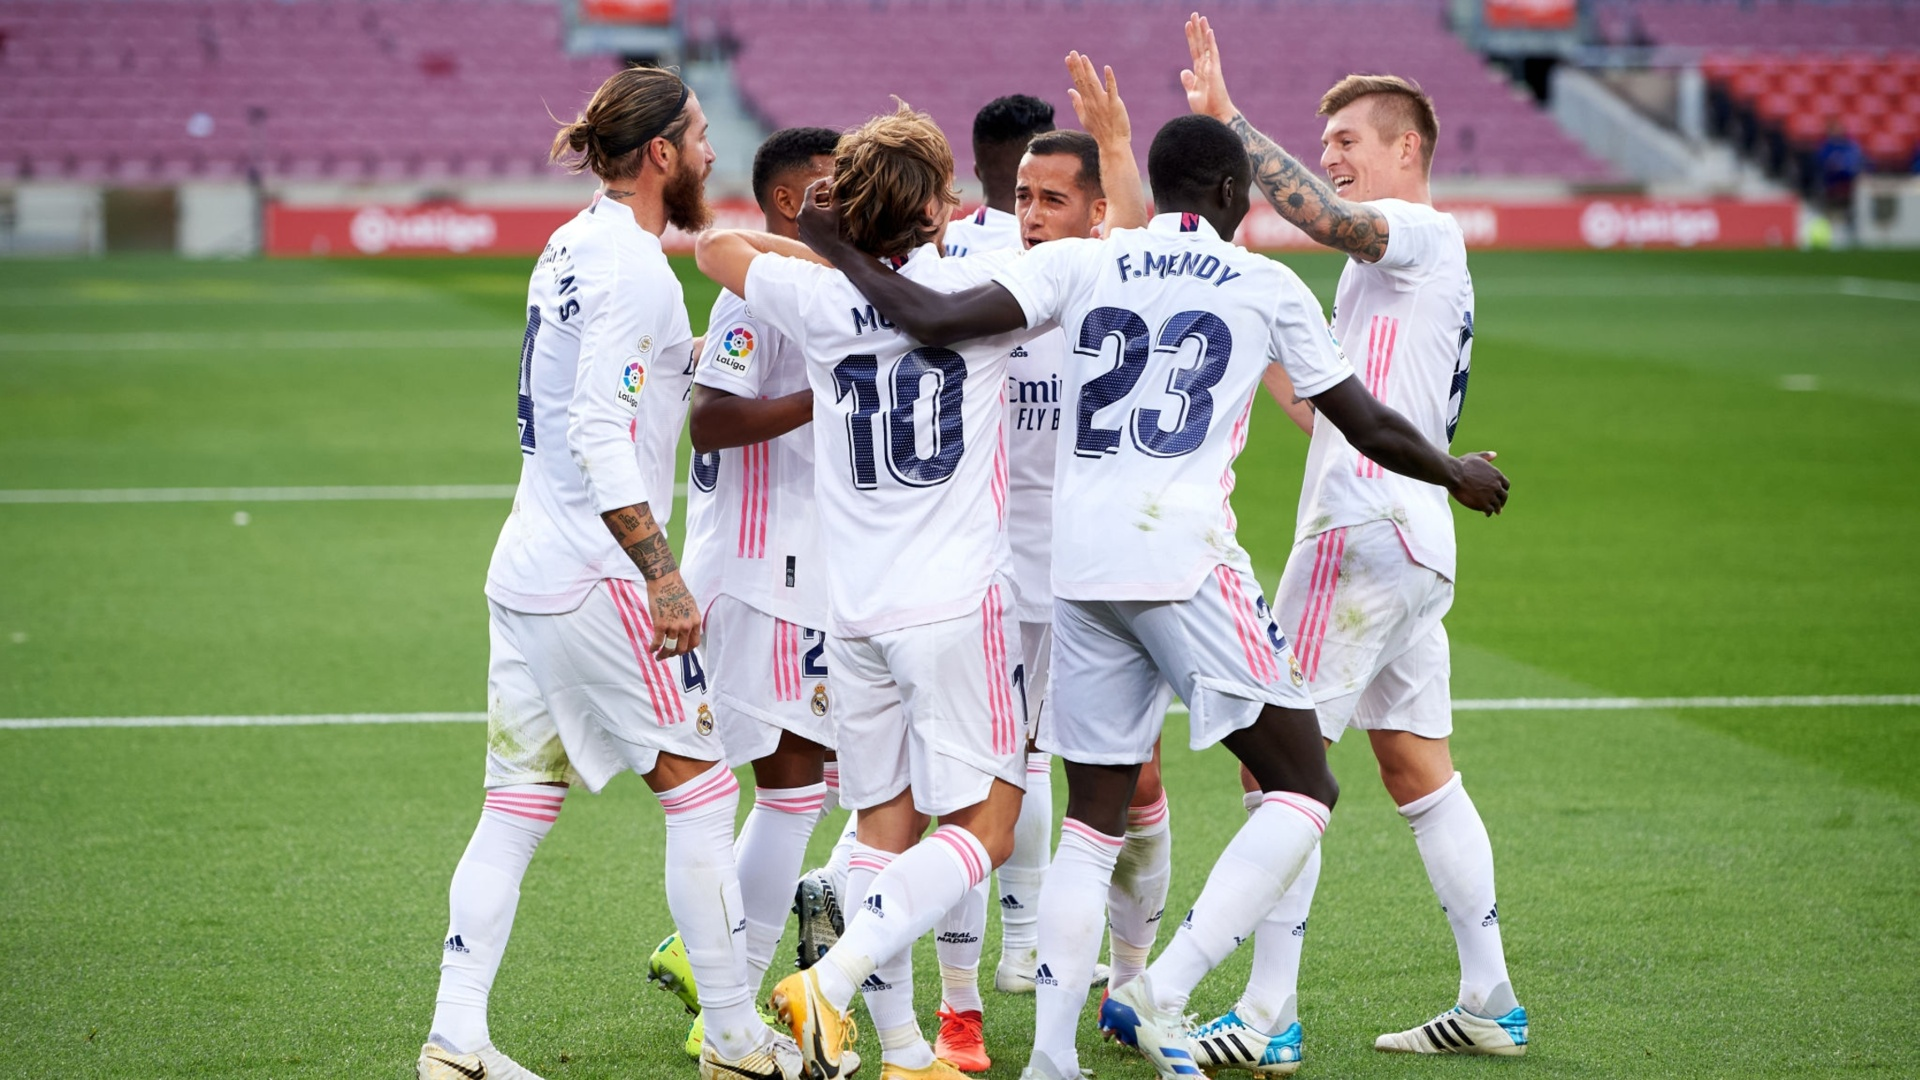 Match preview: Real Madrid vs Huesca